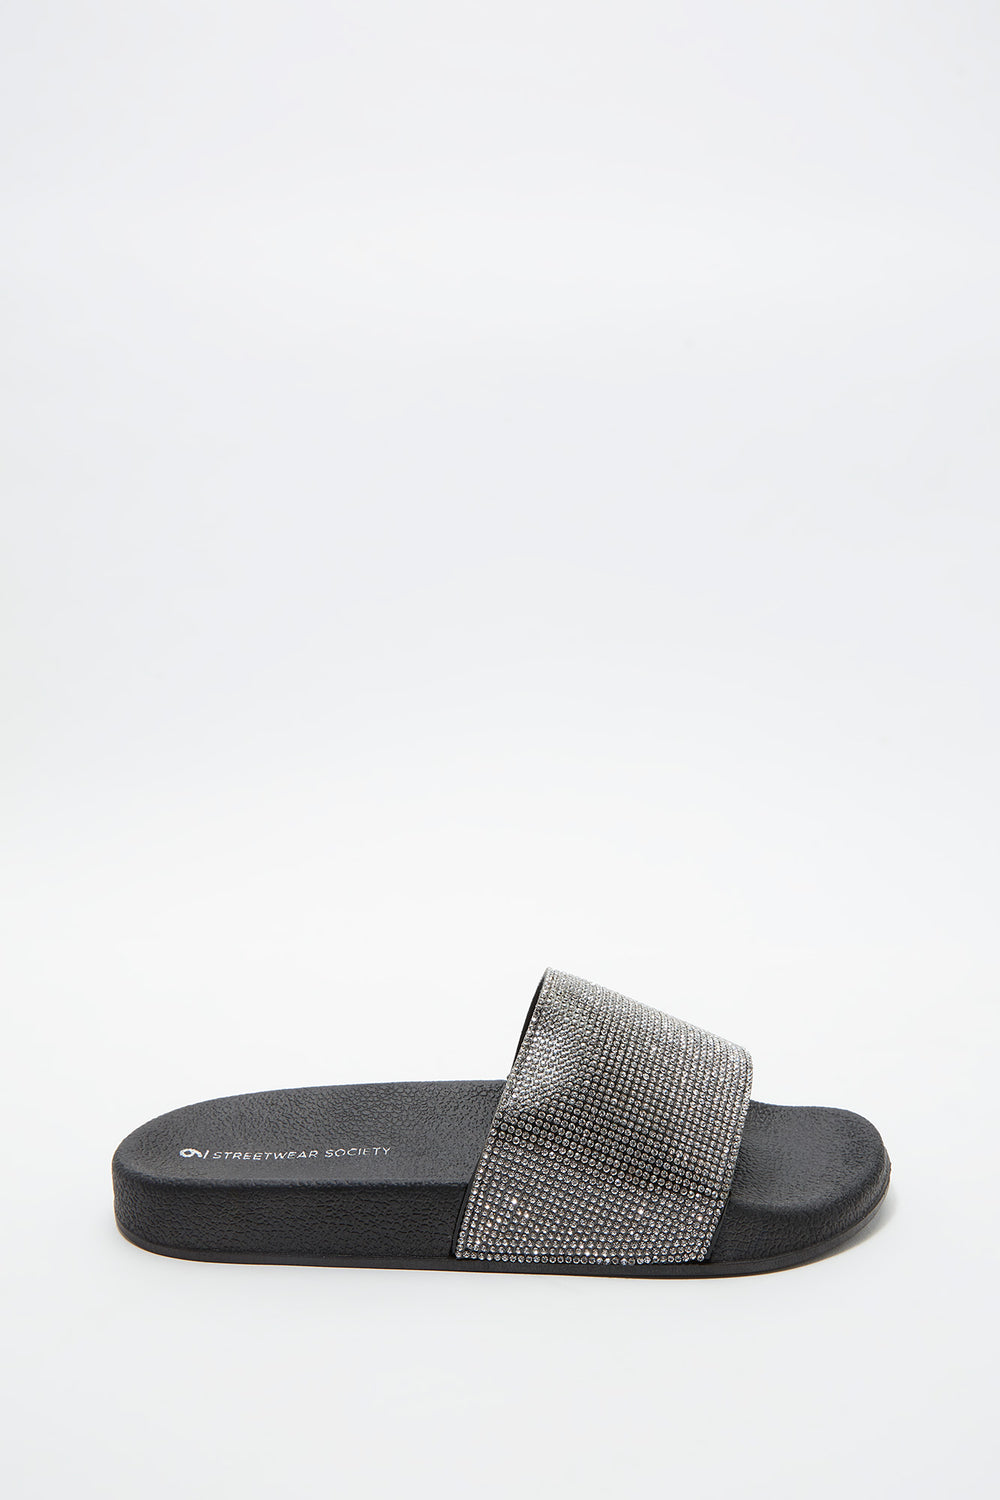 Rhinestone Slide Black